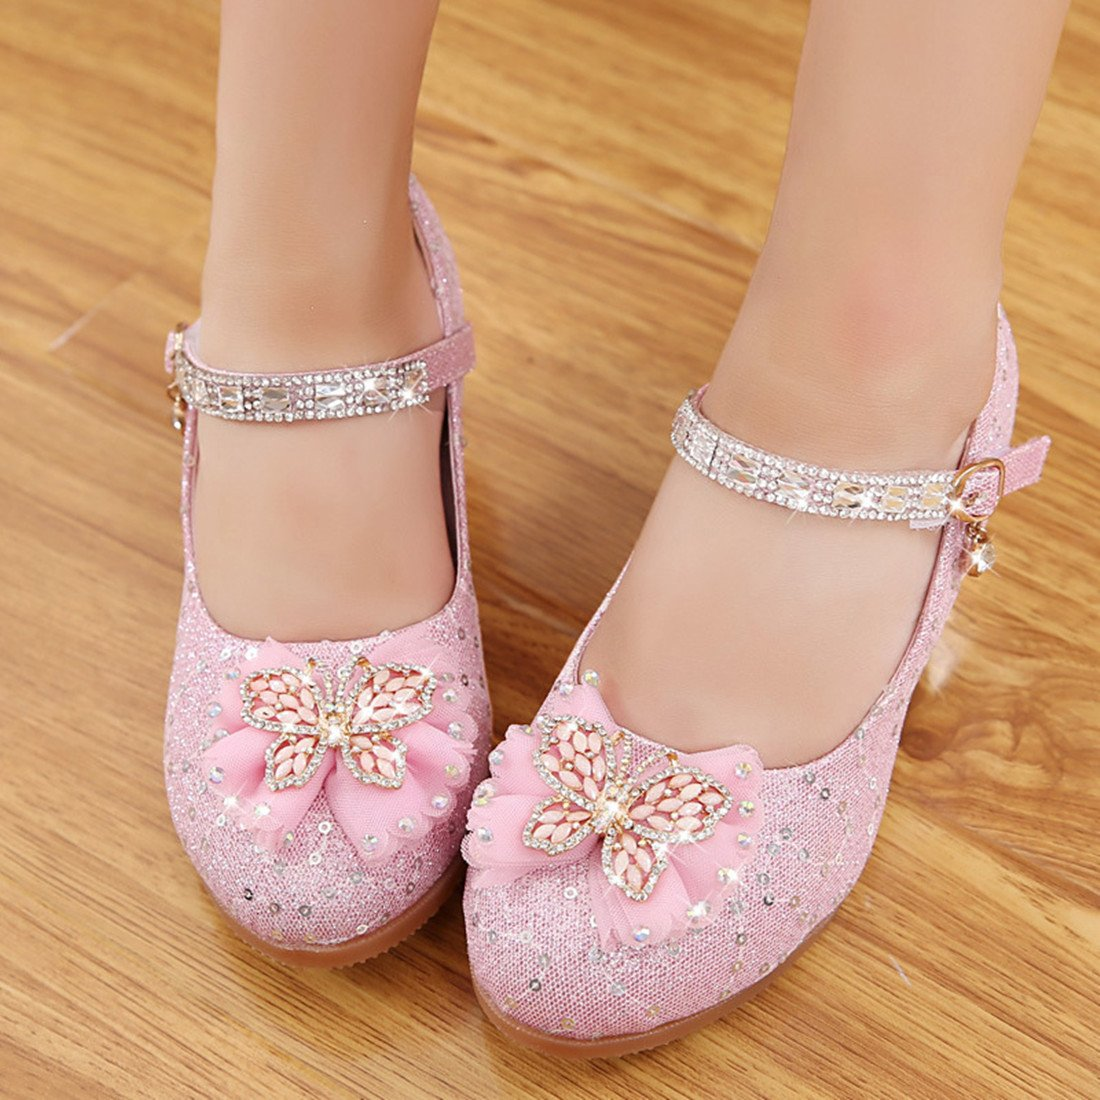 Toddler Littlle Big Kids Girls Glitter Wedding Shoes Dancing Party Mary Jane Flat Shoes Pink Size 2 by YANGXING (Image #6)